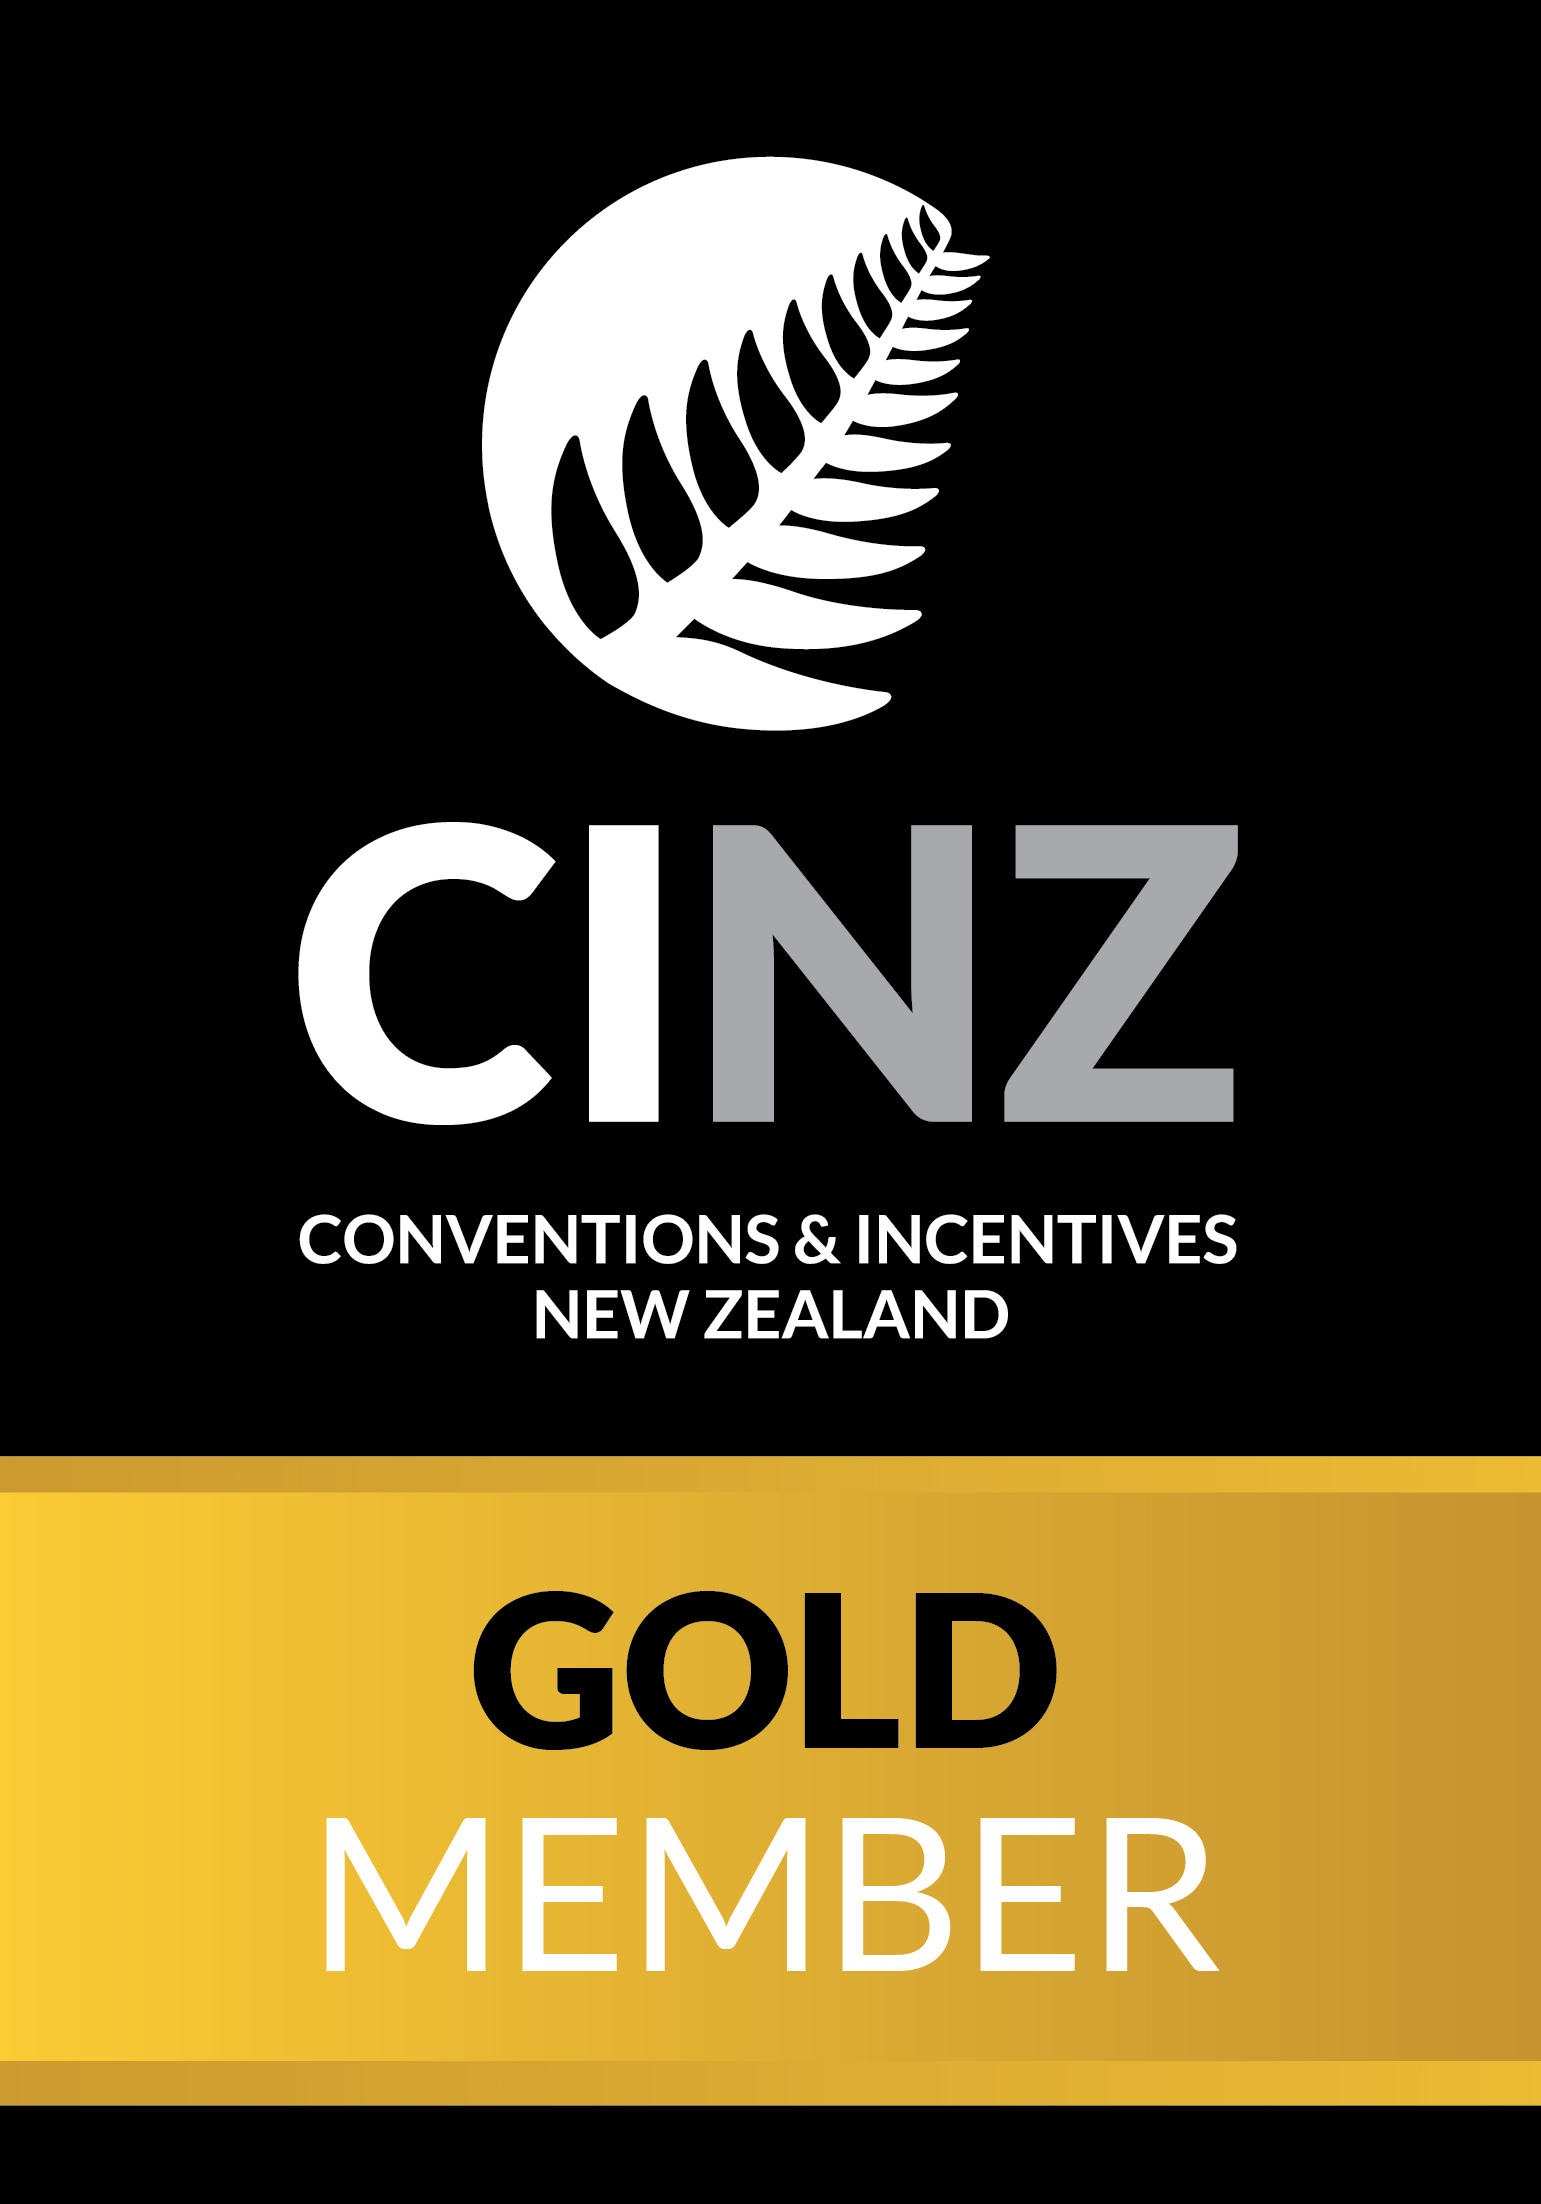 https://rfacdn.nz/conventions/assets/media/cinz-gold-member-hr.jpg